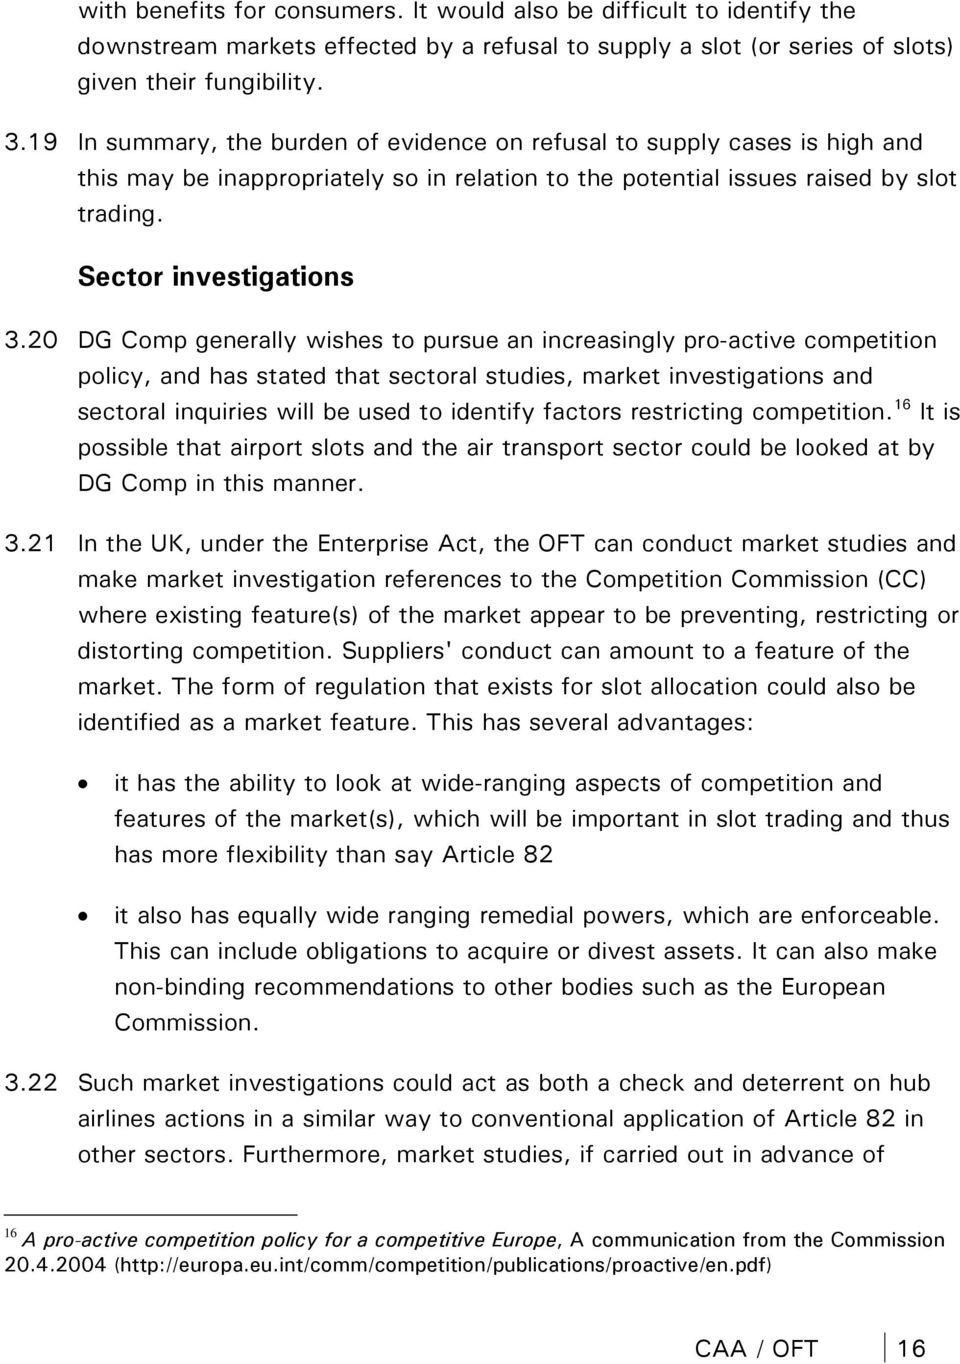 20 DG Comp generally wishes to pursue an increasingly pro-active competition policy, and has stated that sectoral studies, market investigations and sectoral inquiries will be used to identify